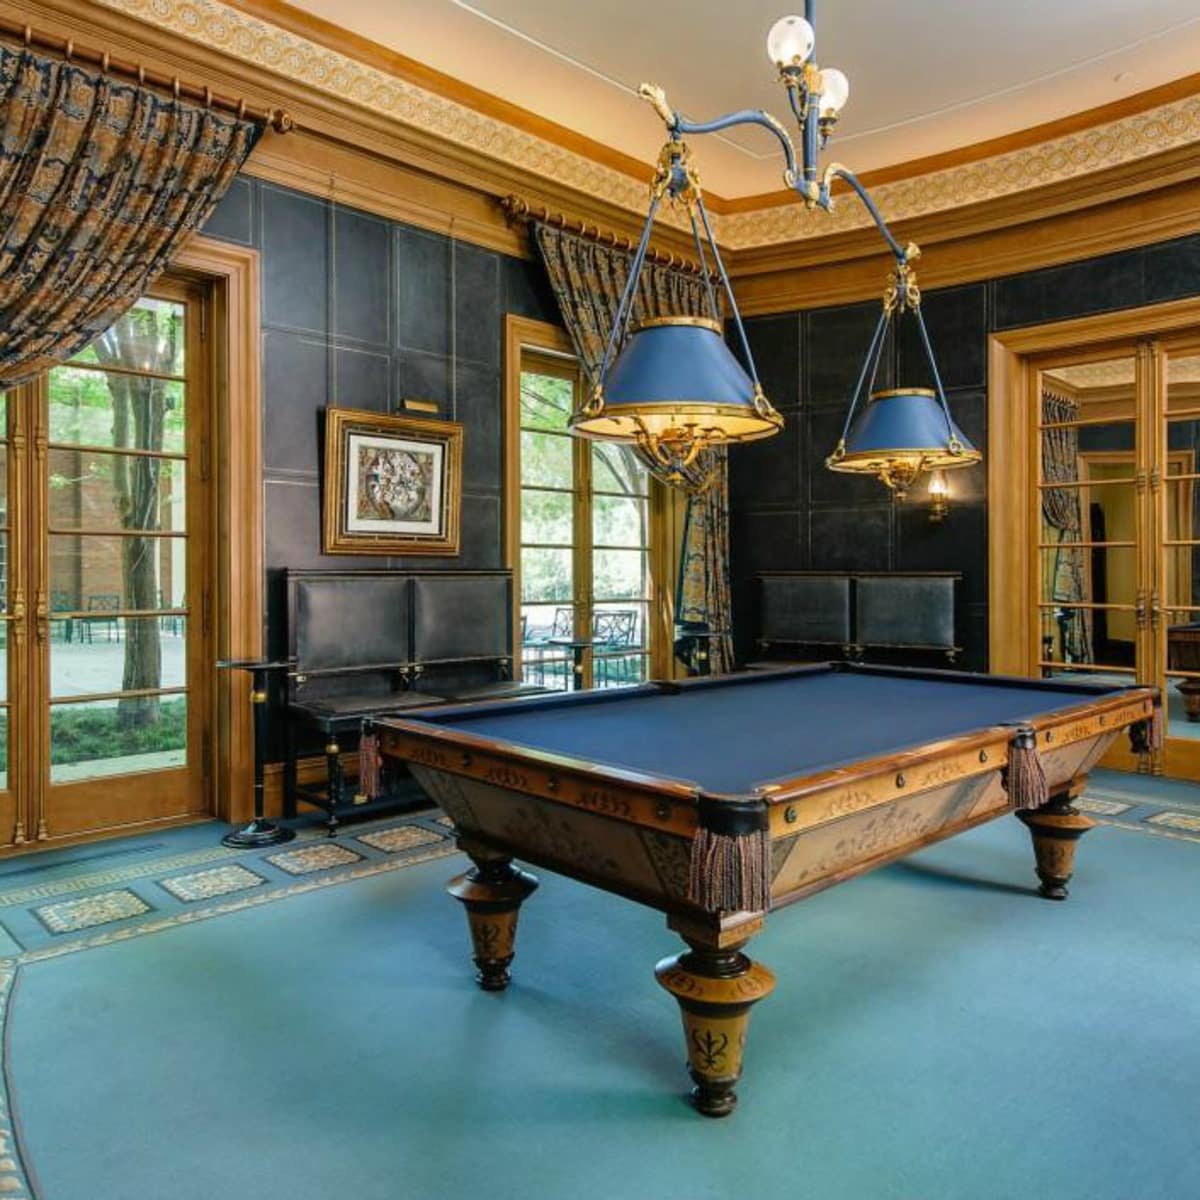 5950 Deloache Ave. for sale in Dallas billiard room